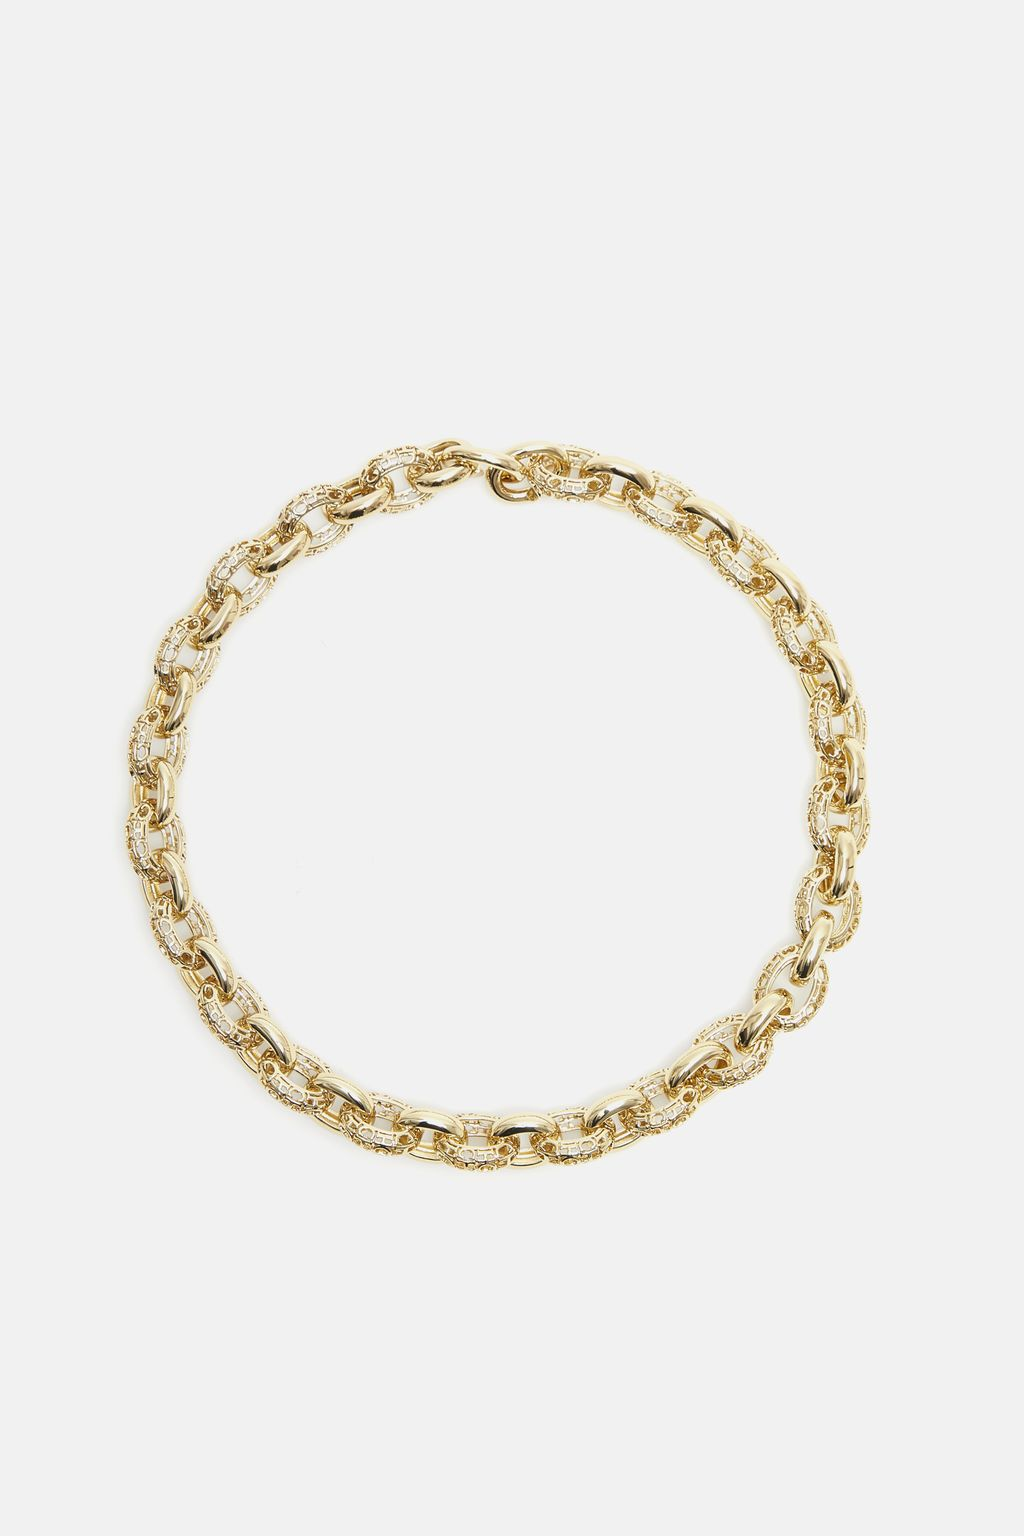 CH Maillon necklace